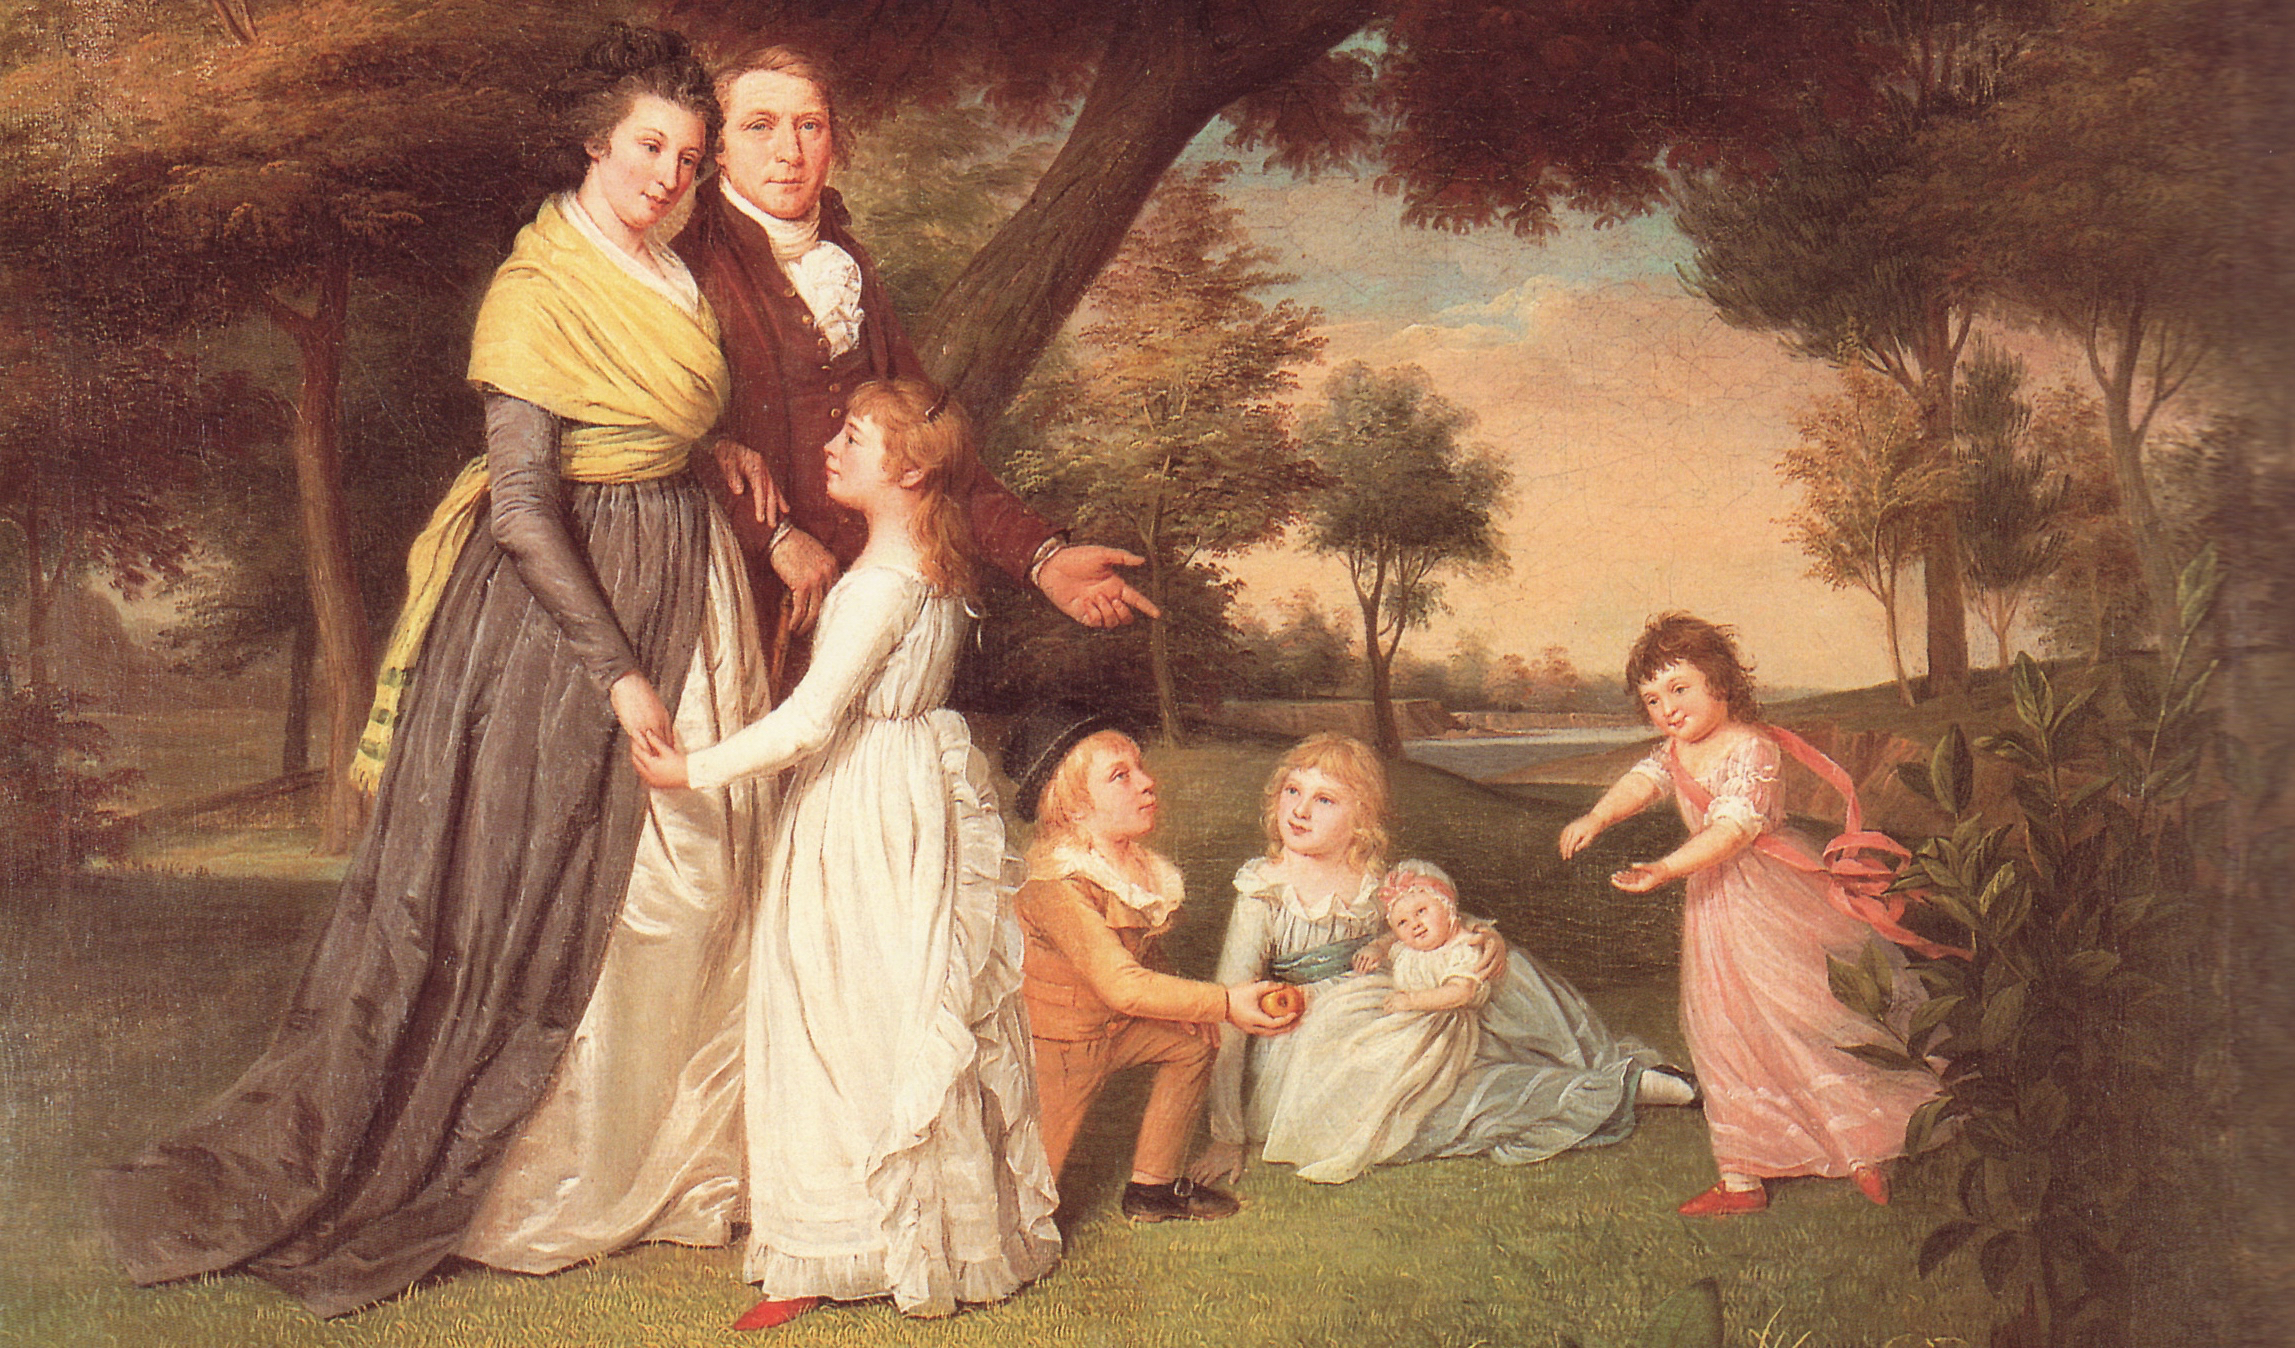 the early republic the american yawp the artist james pealse painted this portrait of his wife mary and five of their eventual